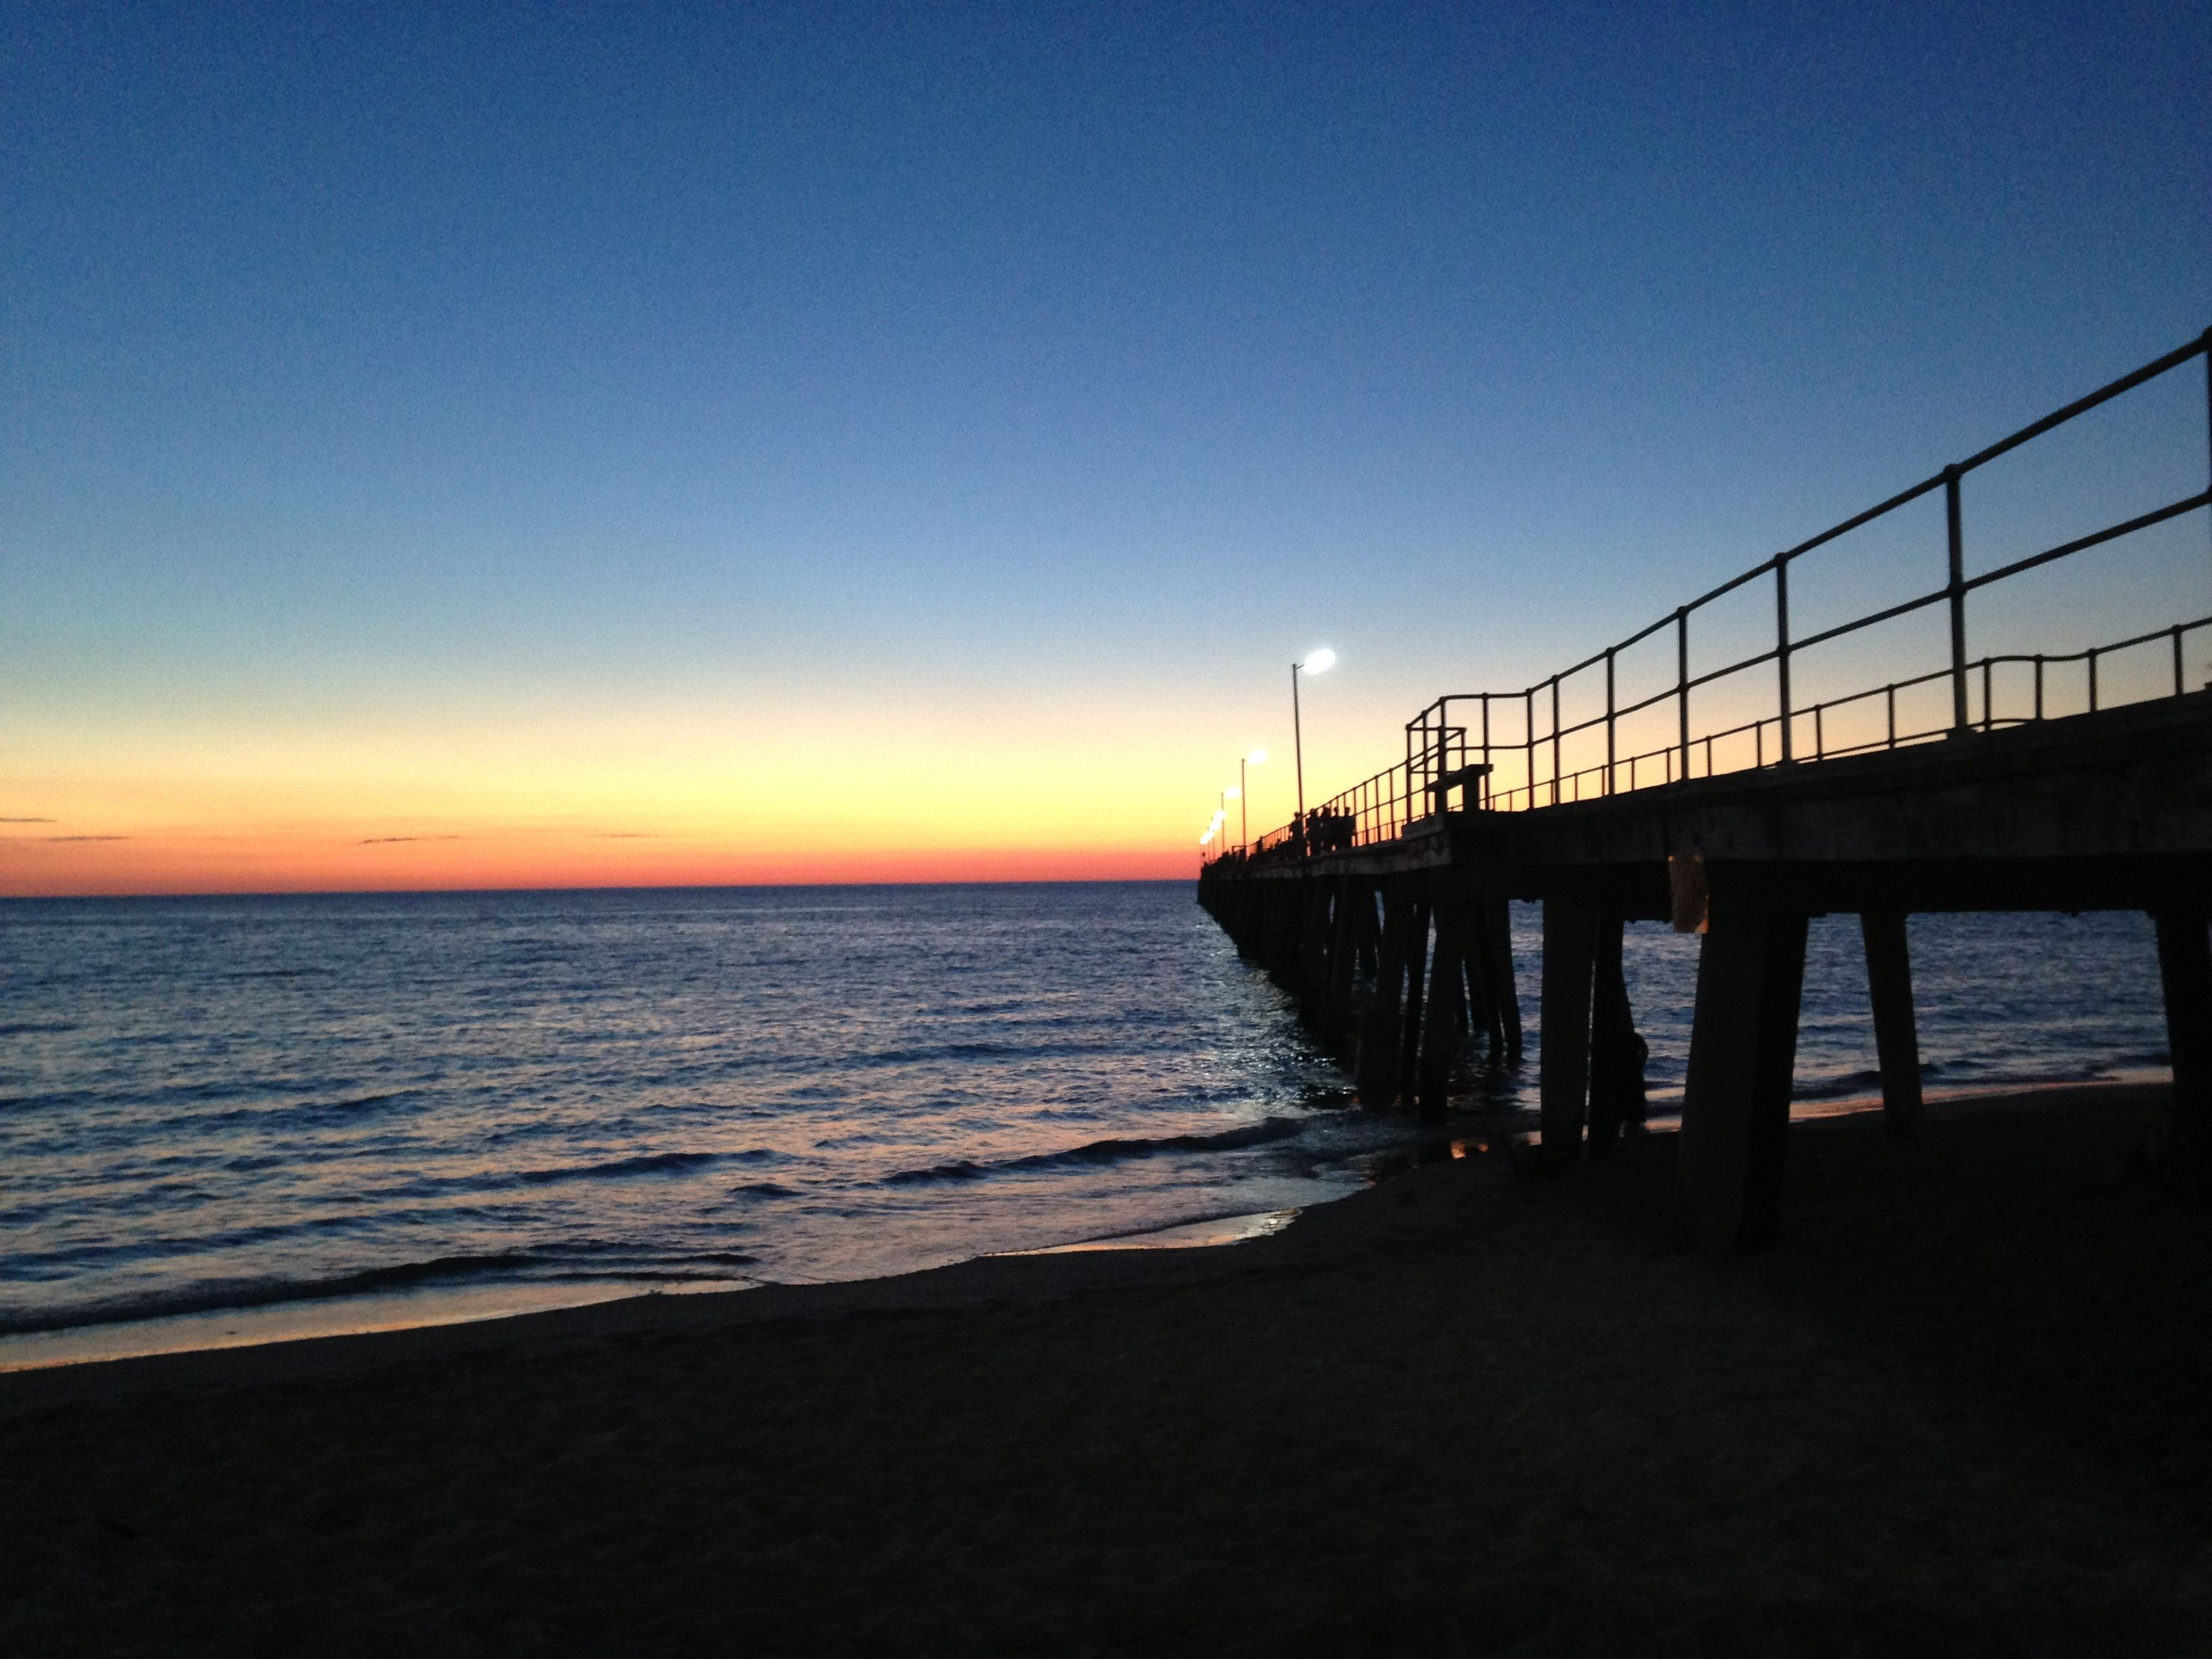 Port Noarlunga Australia  city photo : Port Noarlunga, South Australia | Home | Pinterest